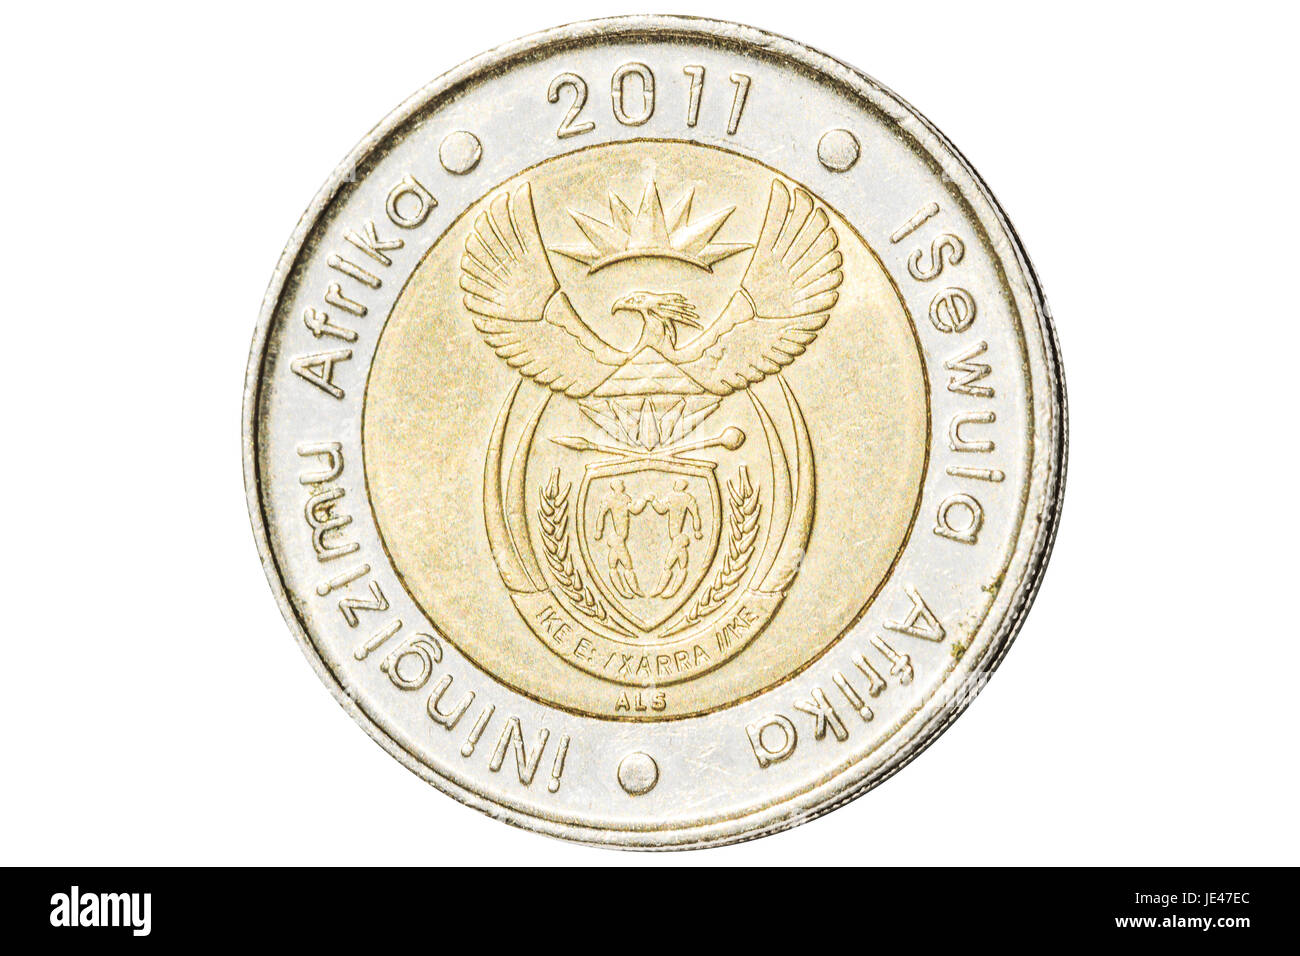 Rand coin stock photos rand coin stock images alamy south african five rand coin stock image buycottarizona